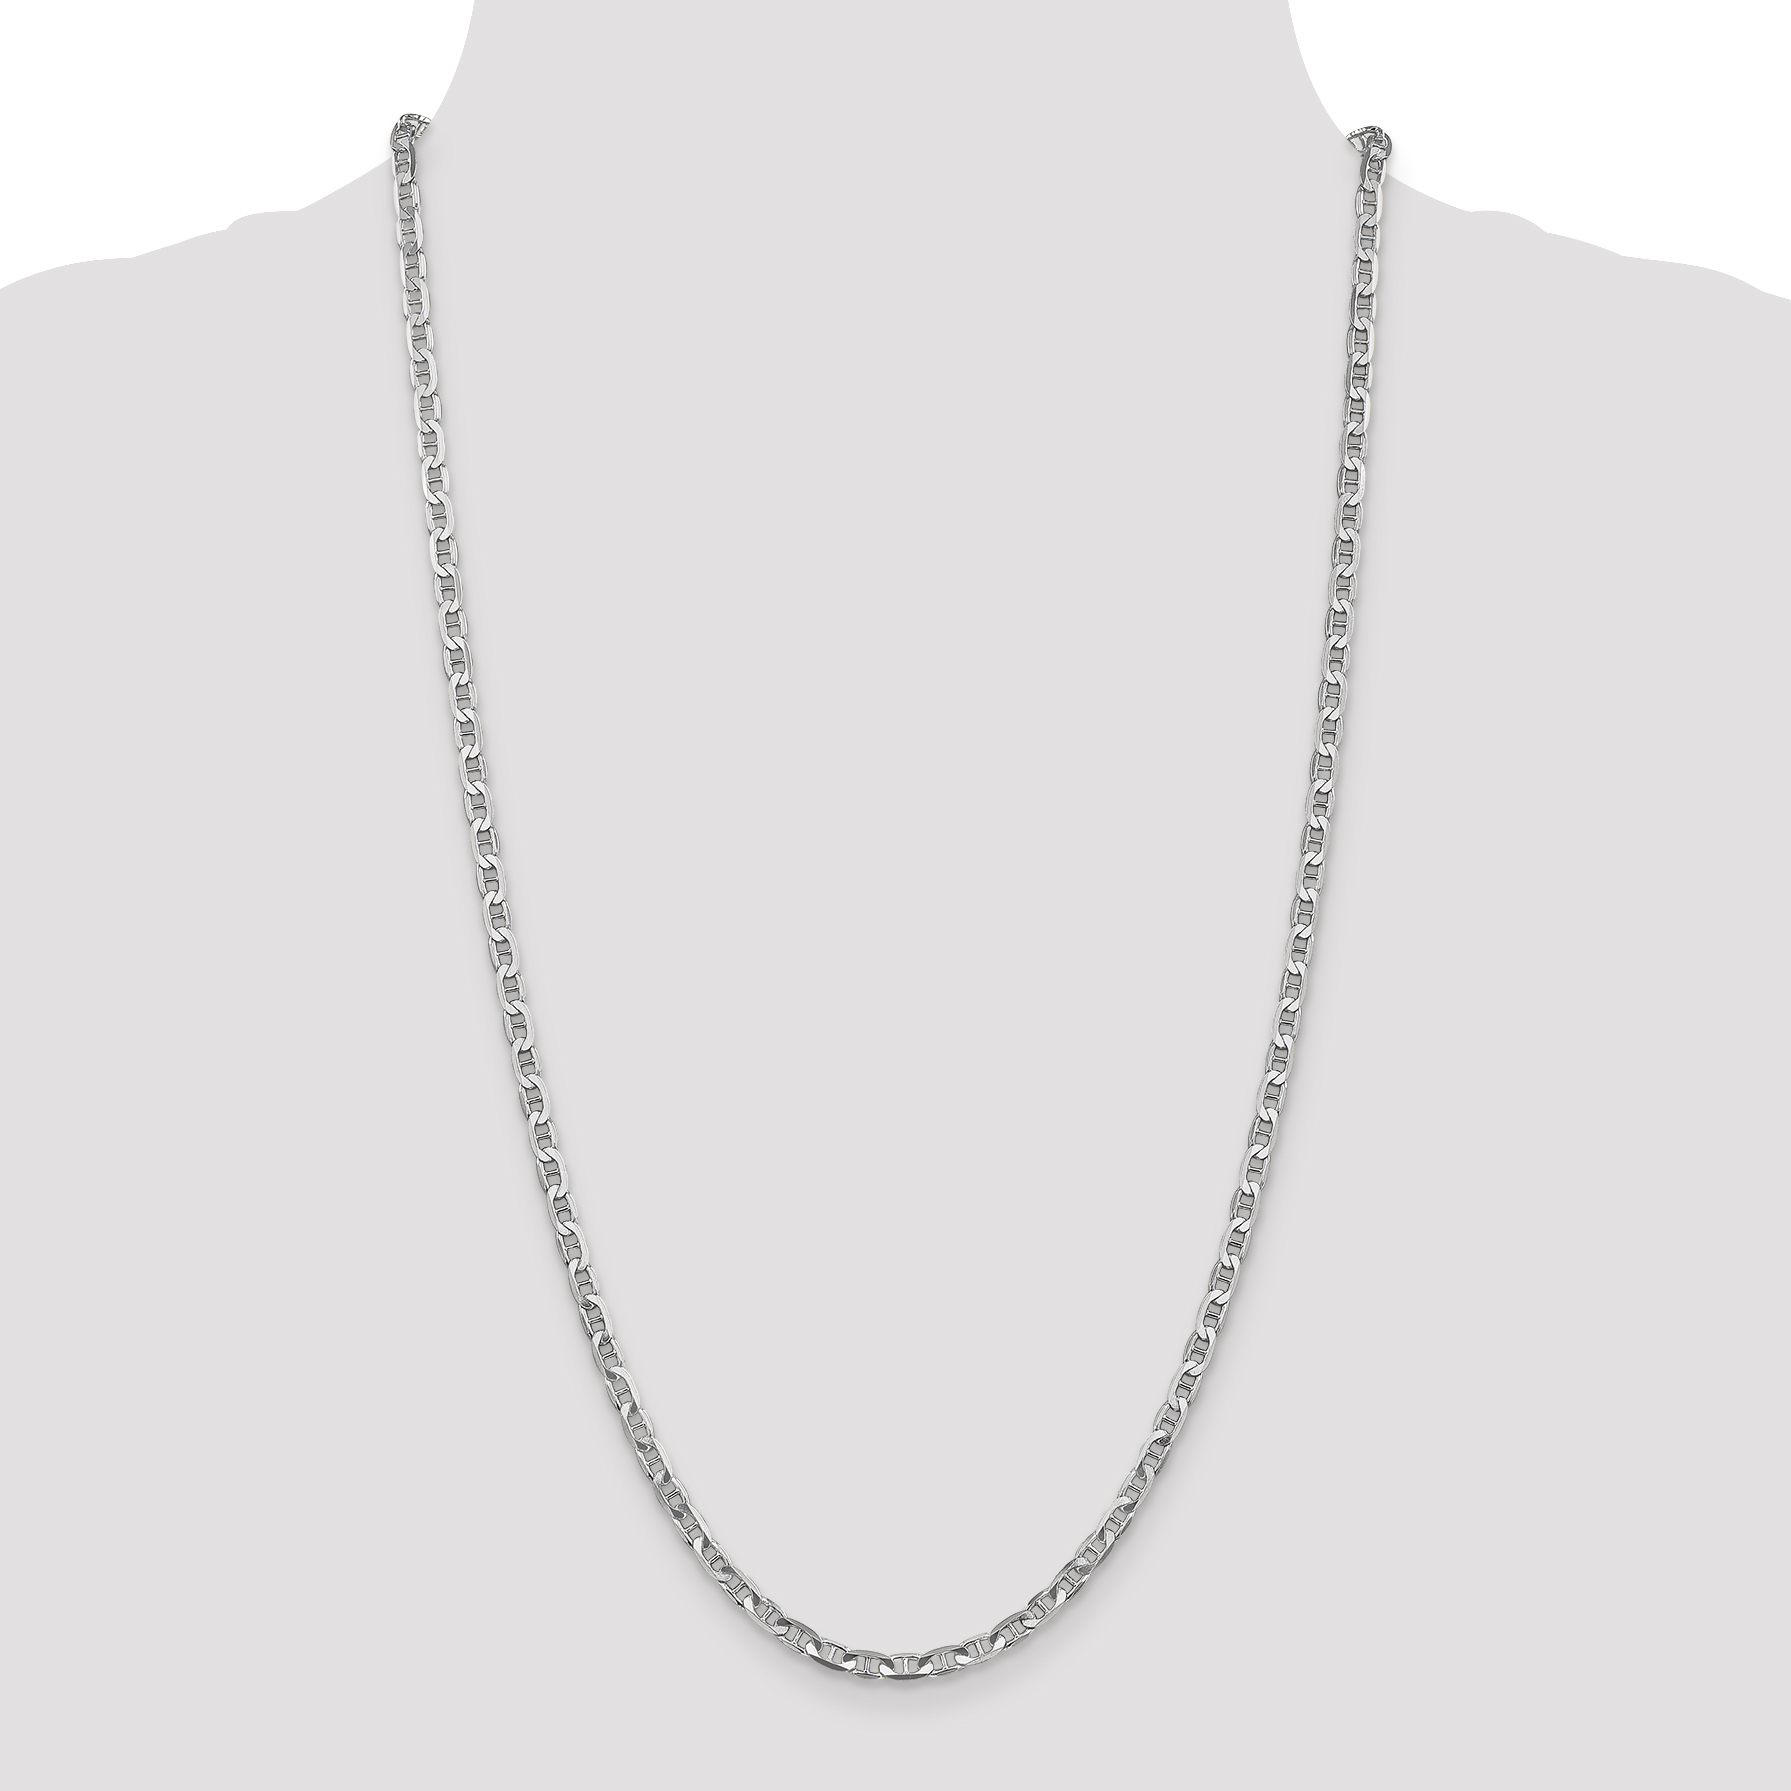 14K White Gold 3.75mm Concave Anchor Chain 24 Inch - image 4 of 5